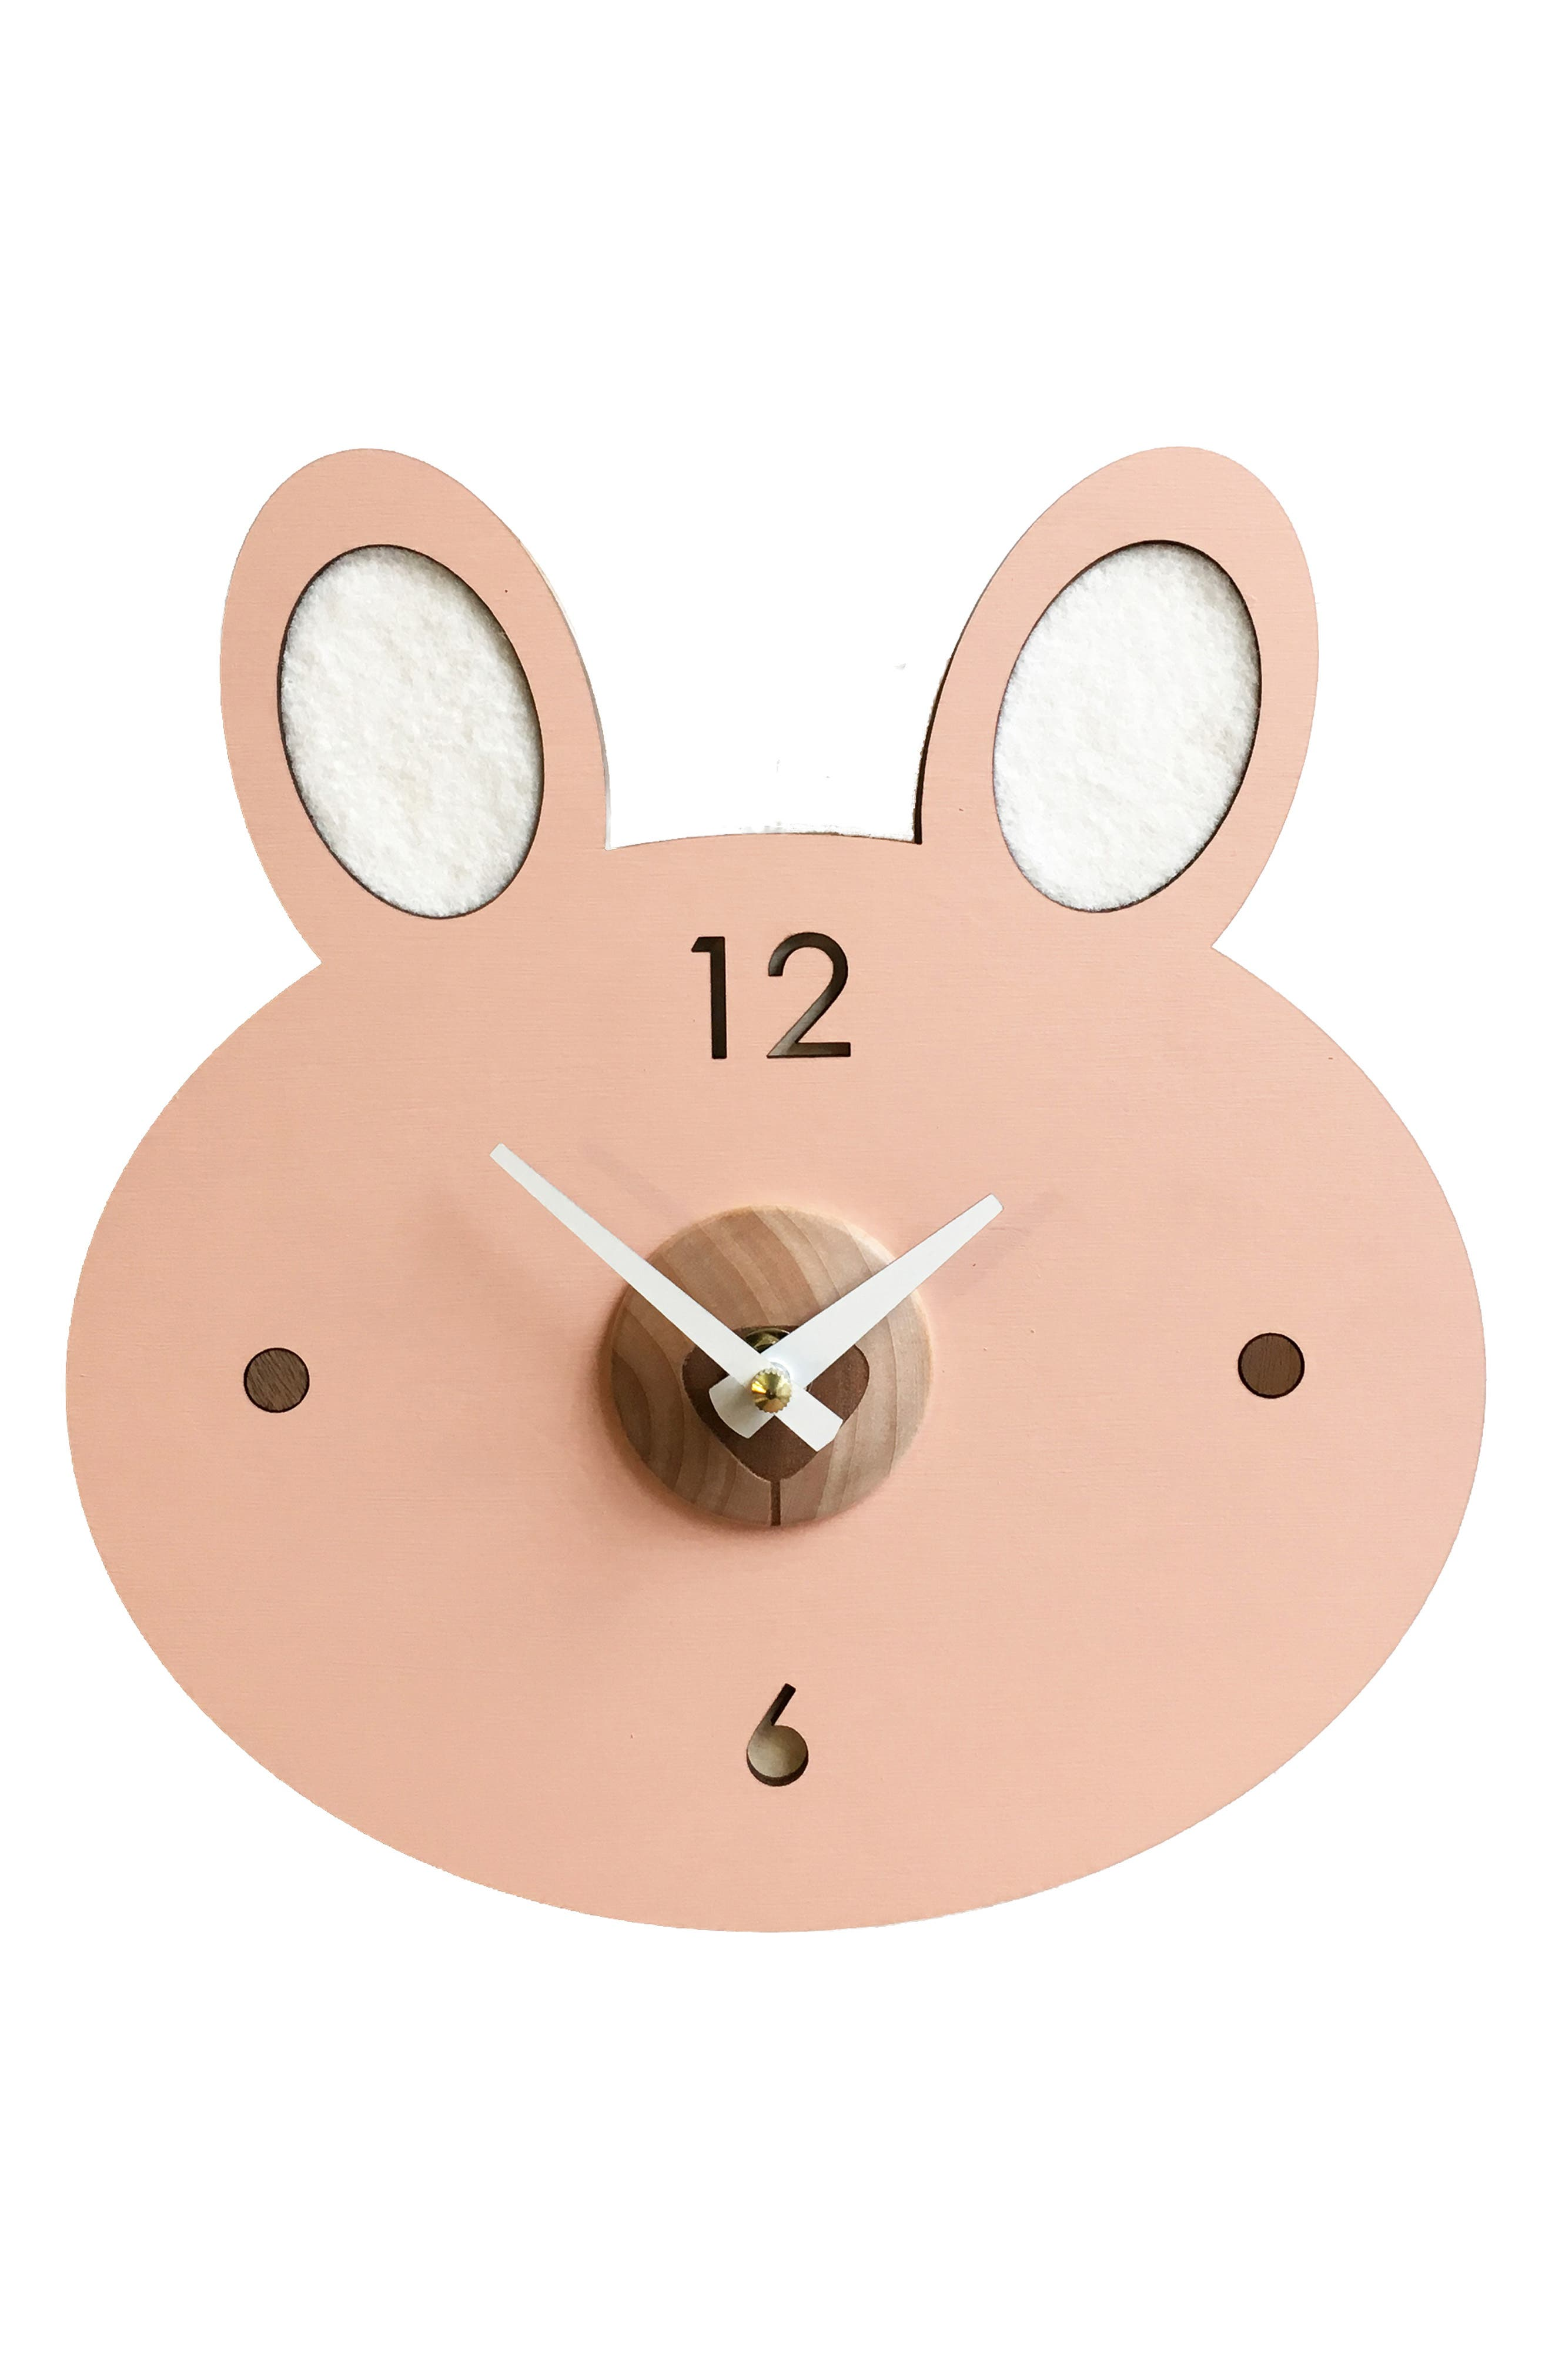 An adorable and modern addition to any nursery decor, this hand-painted clock is shaped like a minimalist bunny with soft felted-wool ears. Style Name: Tree By Kerri Lee Menagerie Wooden Bunny Clock. Style Number: 6064511. Available in stores.